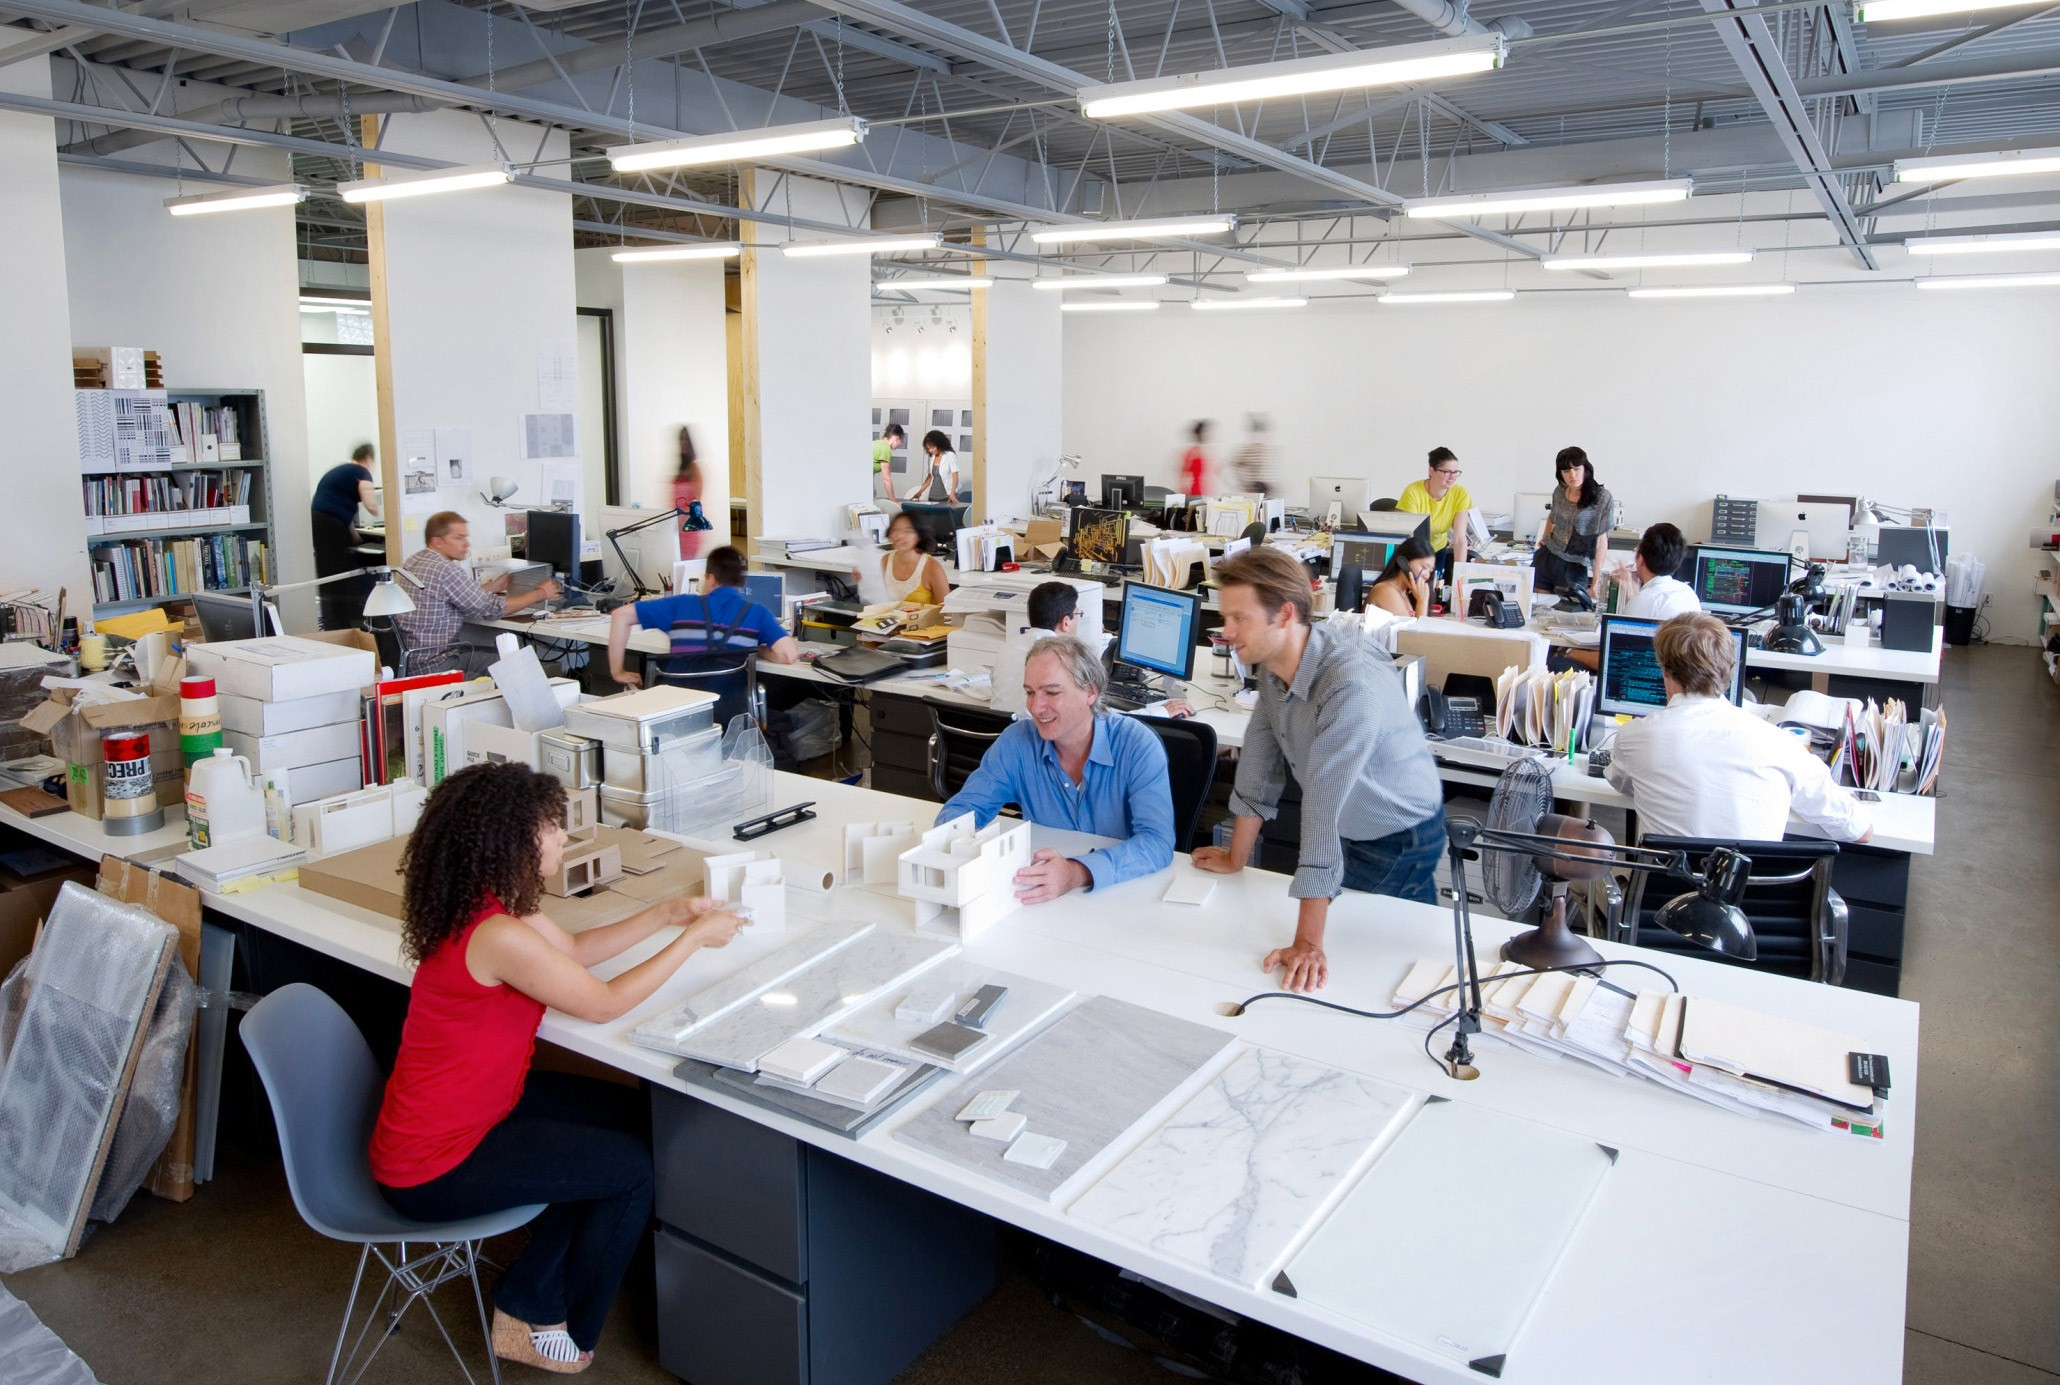 An Architecture Firm, Synergy explains the basics of architects and engineering